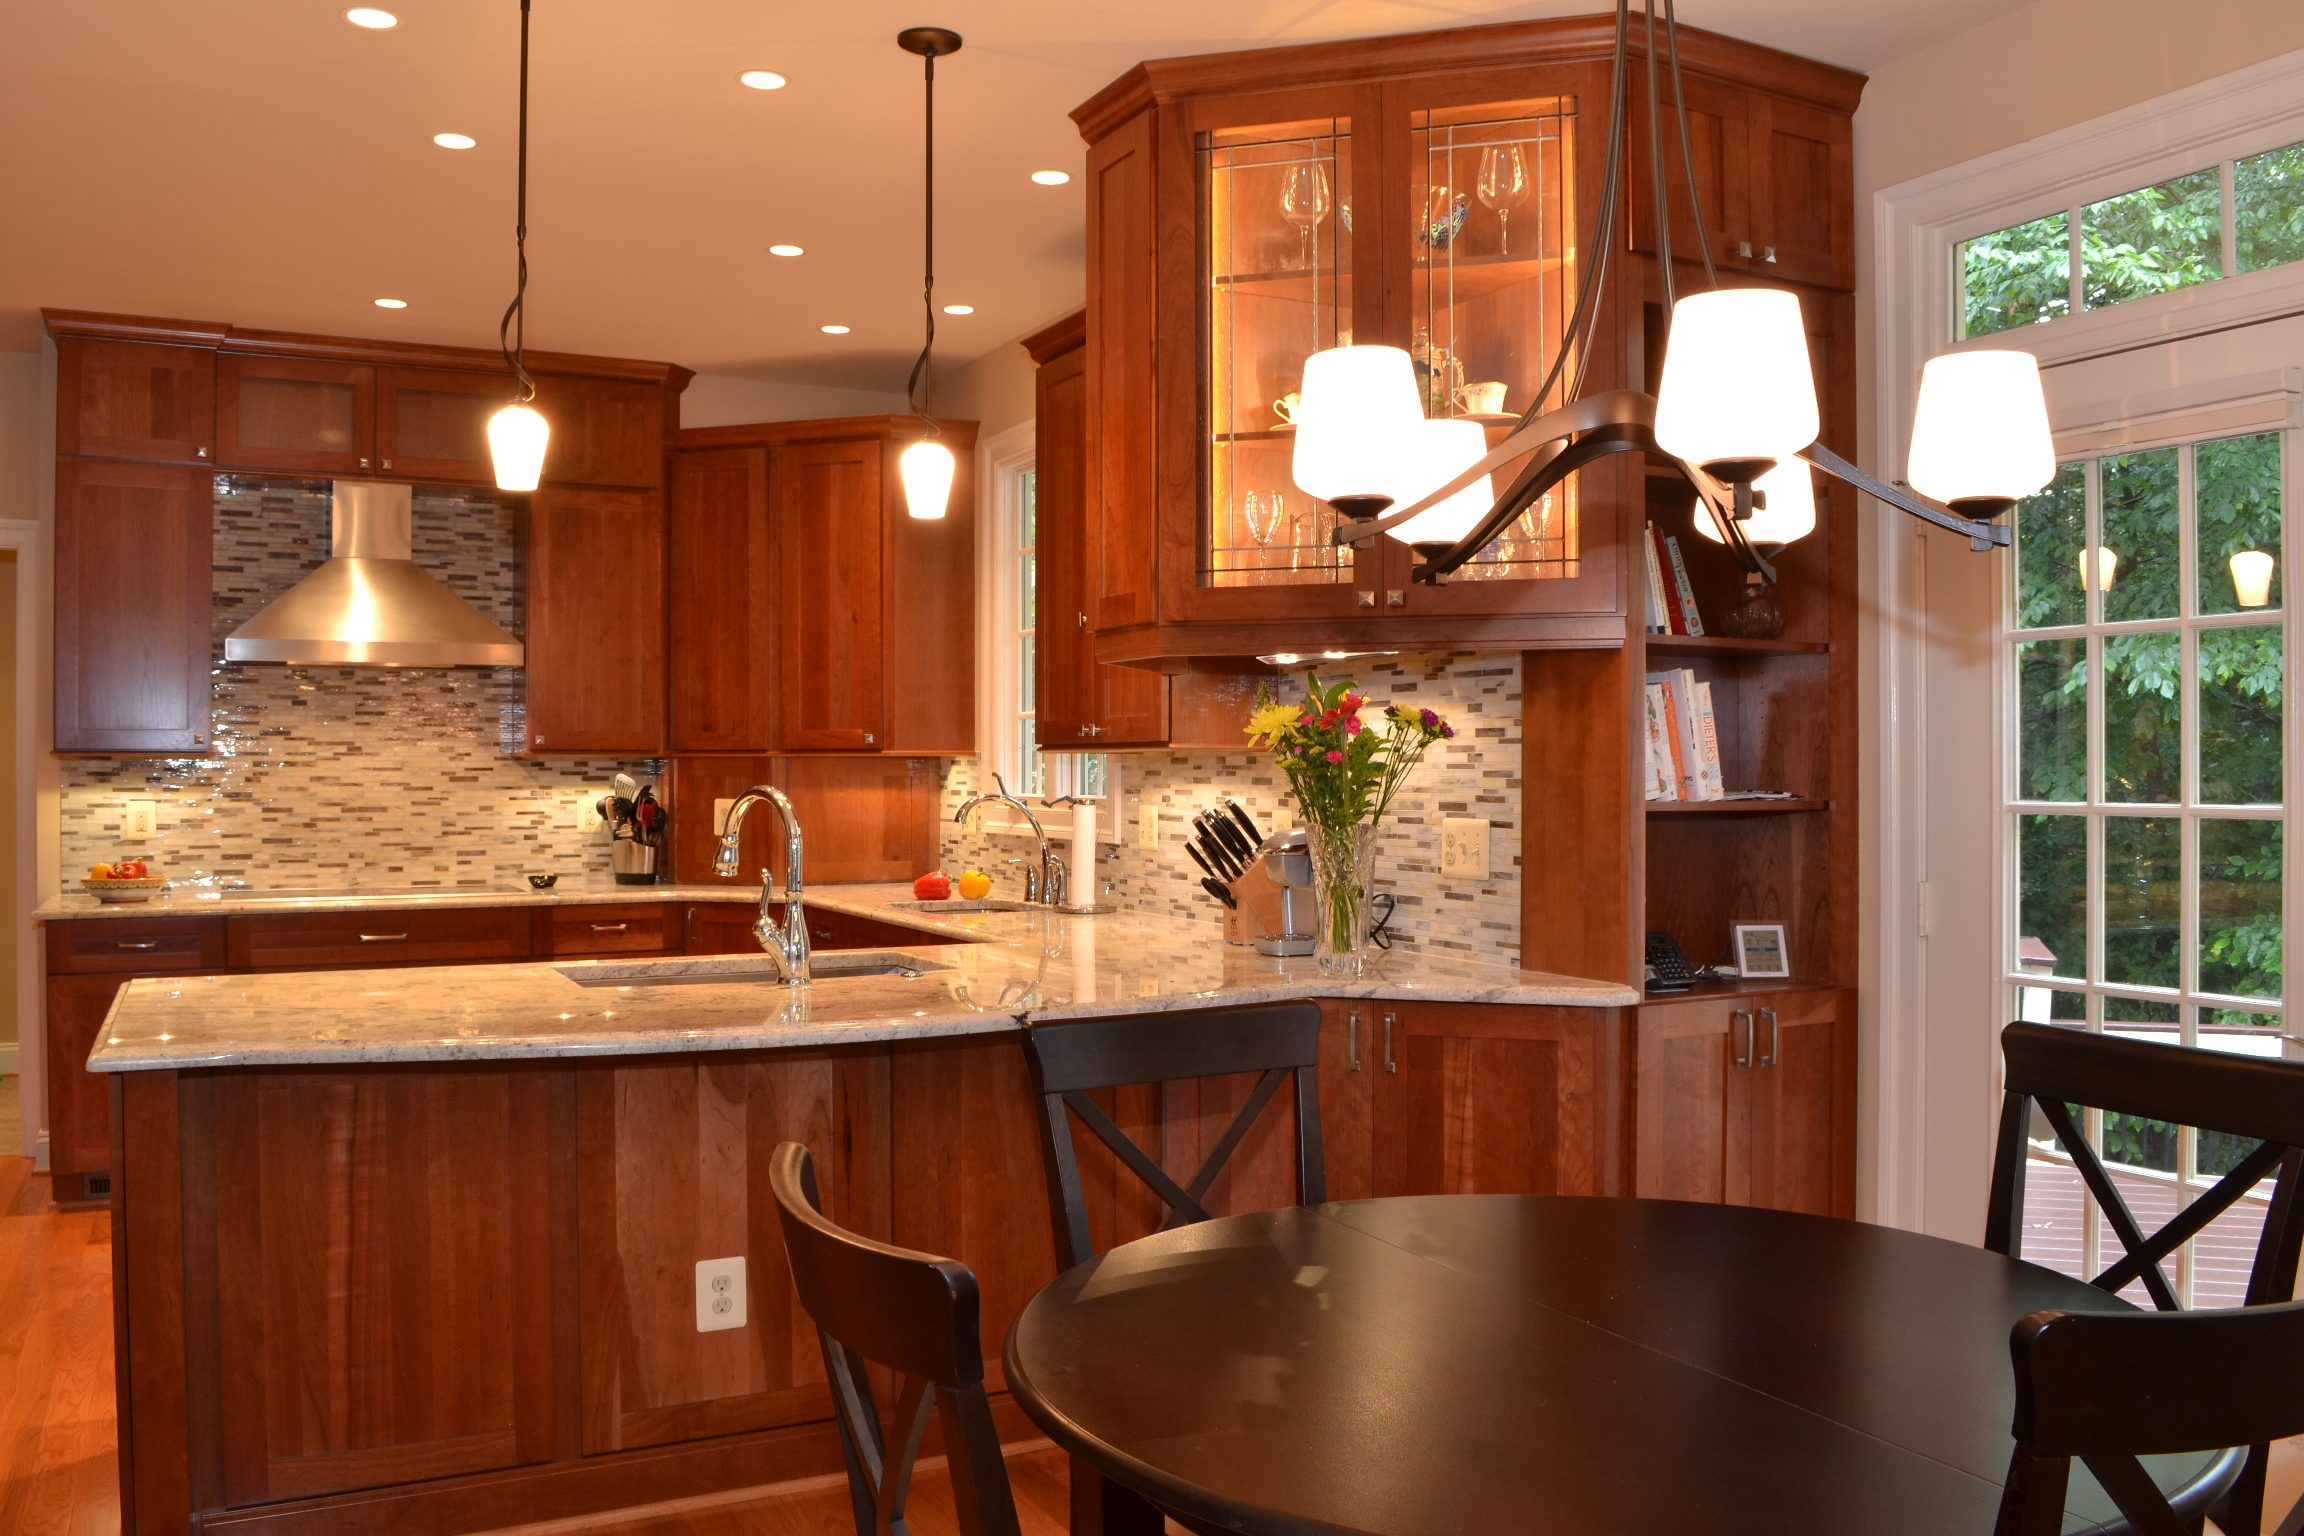 wonderful How Long To Remodel A Kitchen #3: How Long Does It Take To Remodel A Kitchen Zitzat